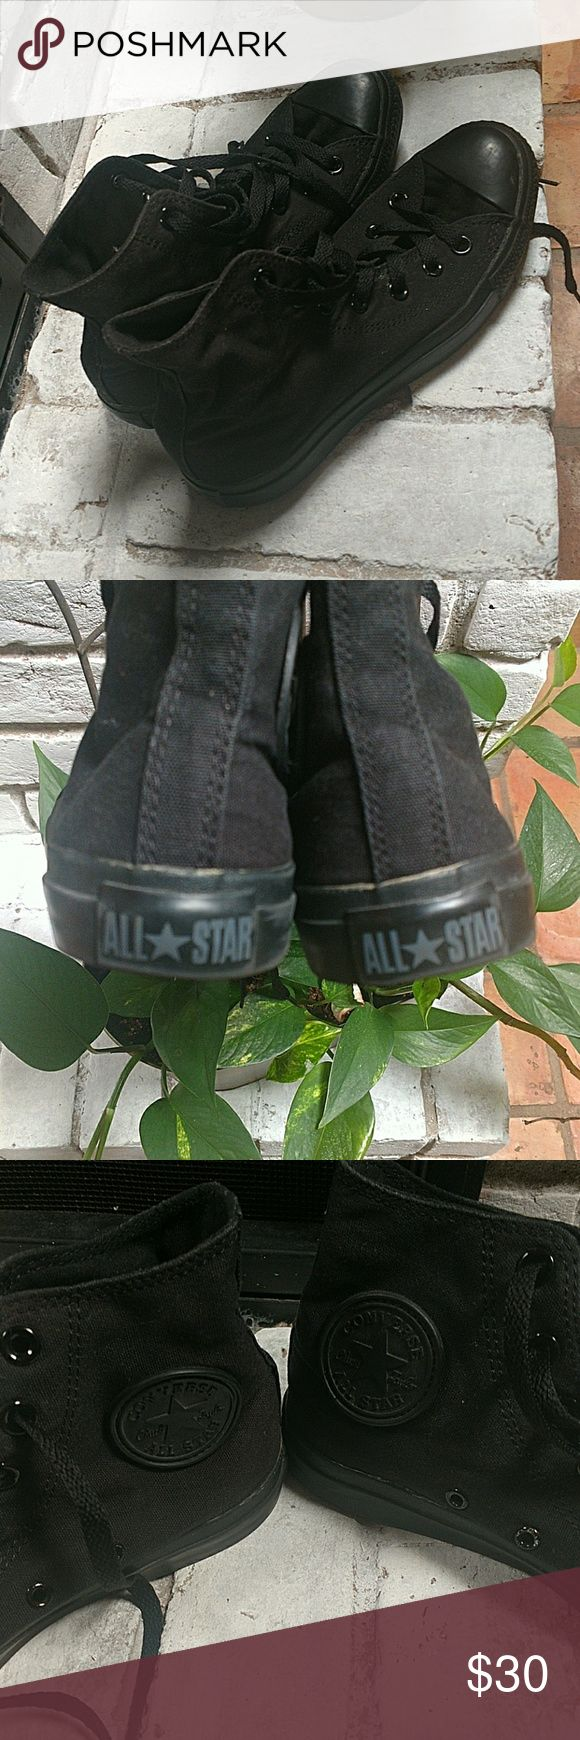 Black high top Converse Chuck Taylor's All black, ( tips, bottom, laces) high top Converse Chuck Taylor's Converse Shoes